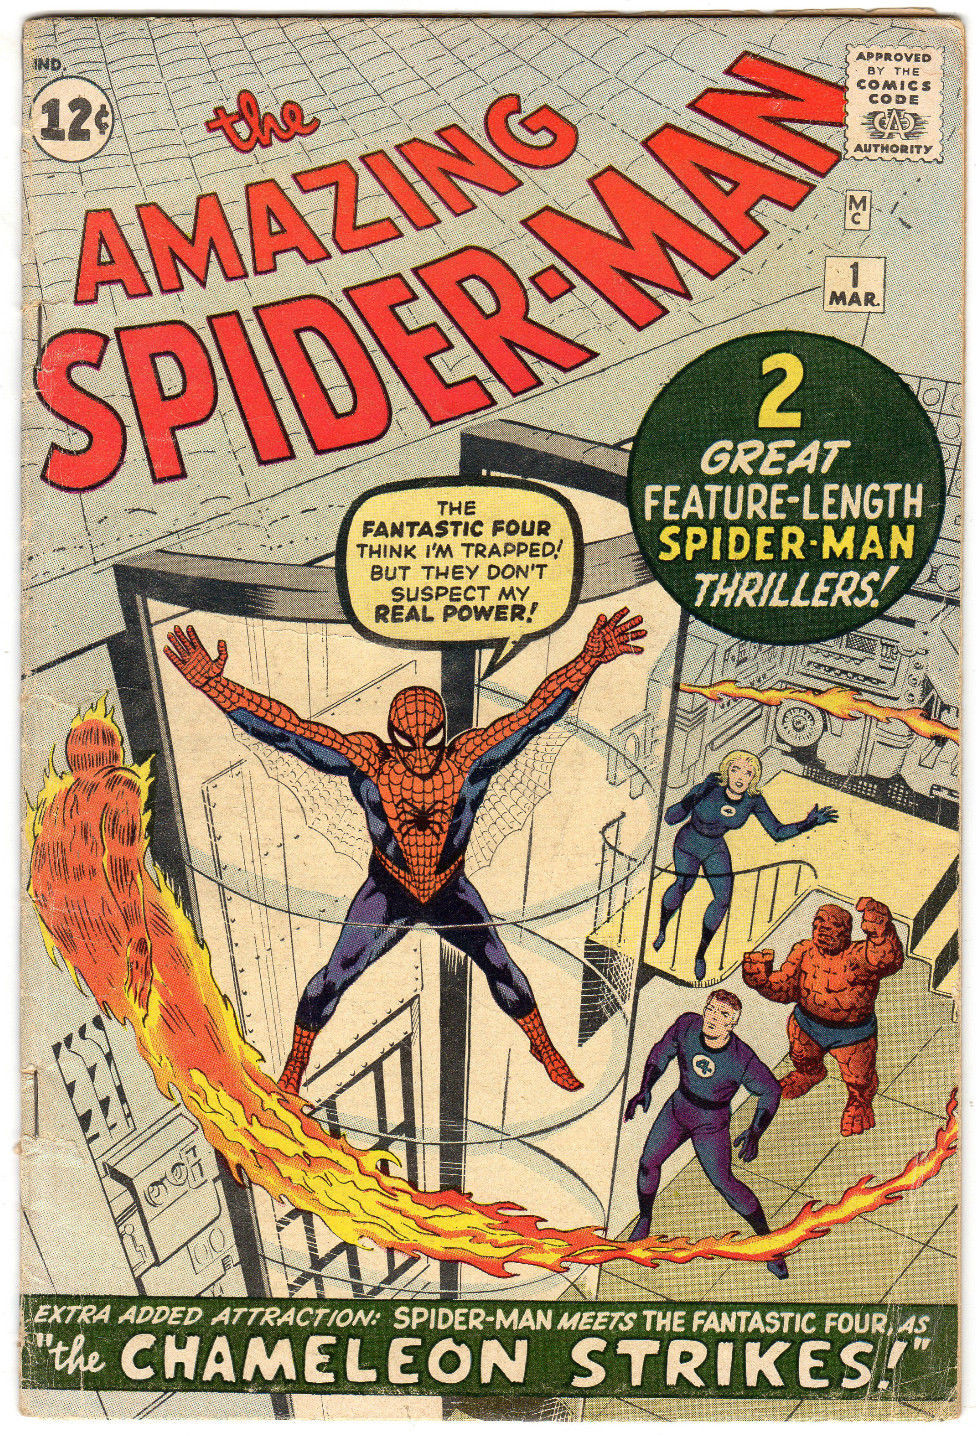 Book Cover Art Cost ~ The amazing spider man comic book values comics watcher